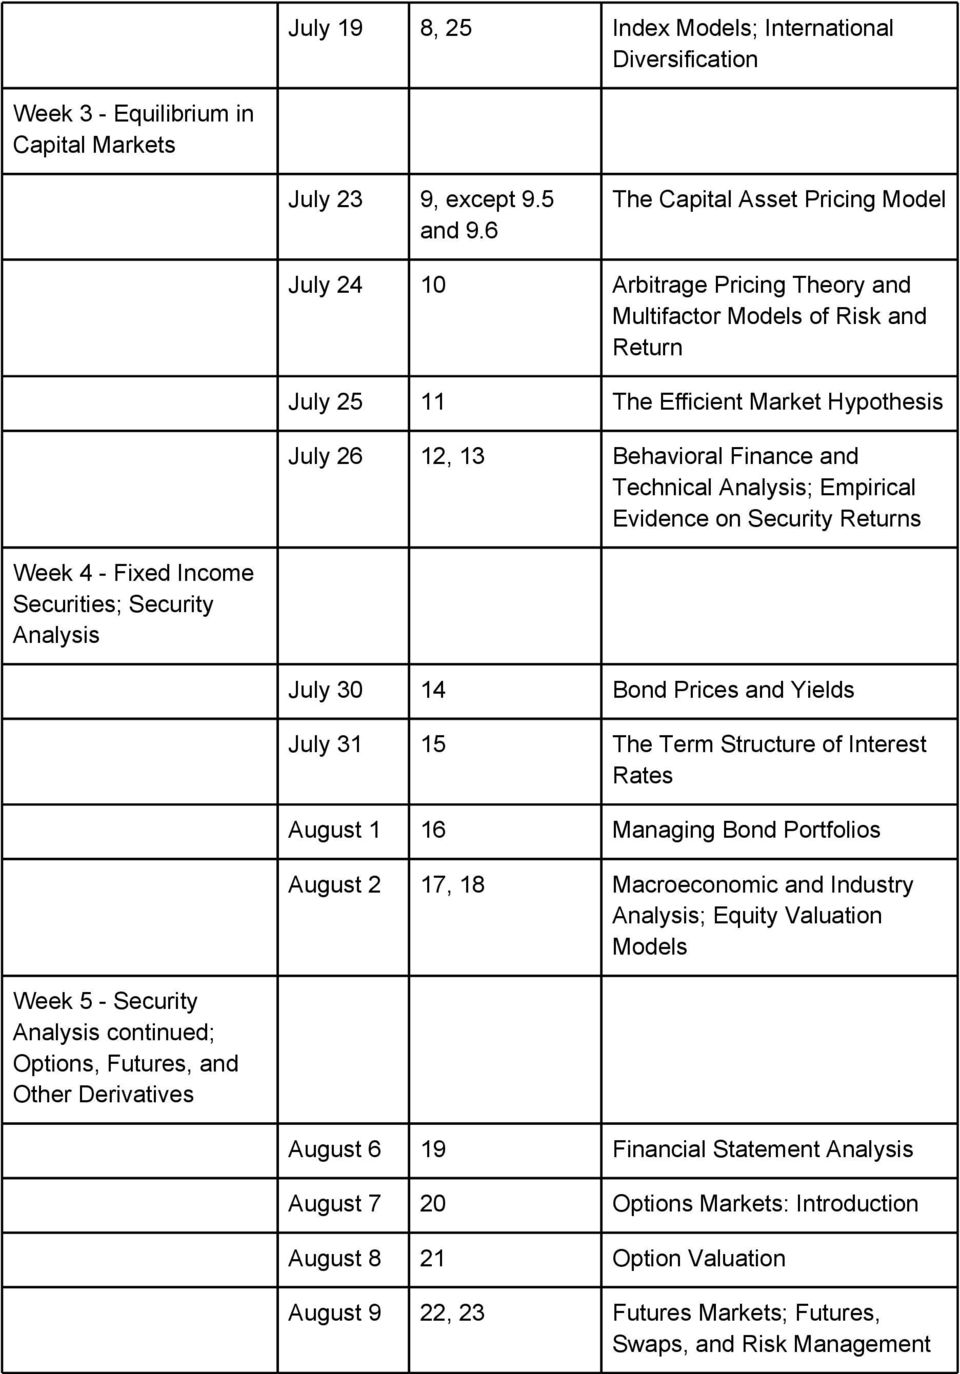 Technical Analysis; Empirical Evidence on Security Returns Week 4 - Fixed Income Securities; Security Analysis July 30 14 Bond Prices and Yields July 31 15 The Term Structure of Interest Rates August